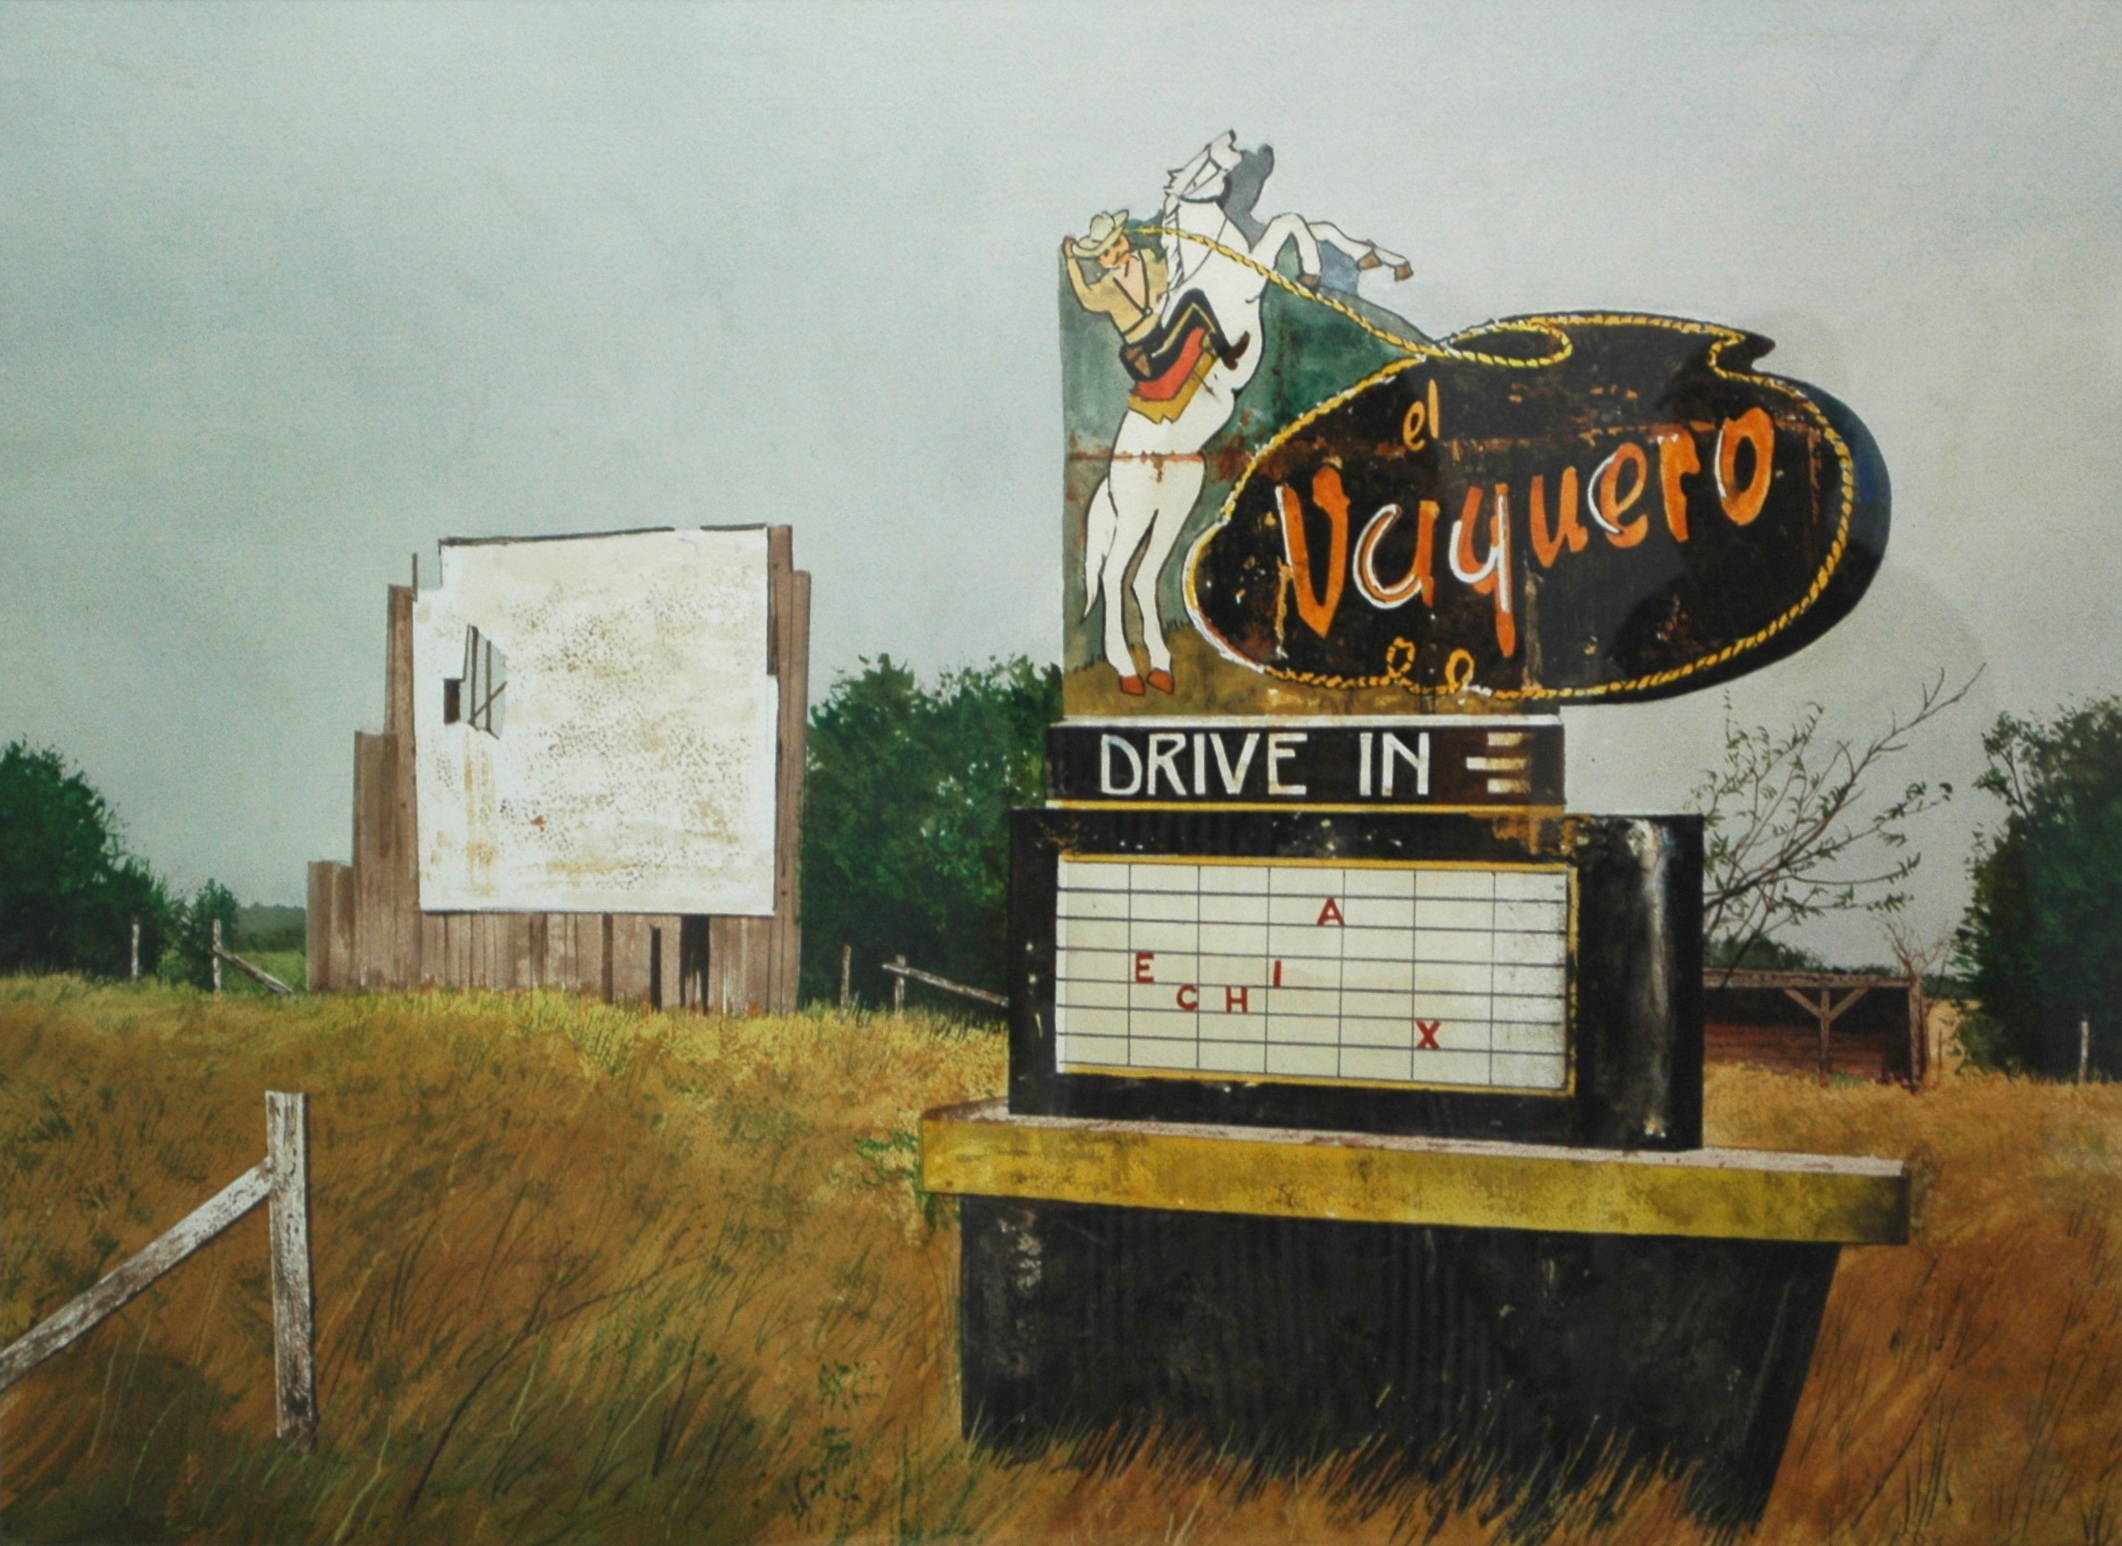 "Daniel Blagg,  The Picture Show,  watercolor on paper, 27 1/2 x 35"" SOLD."